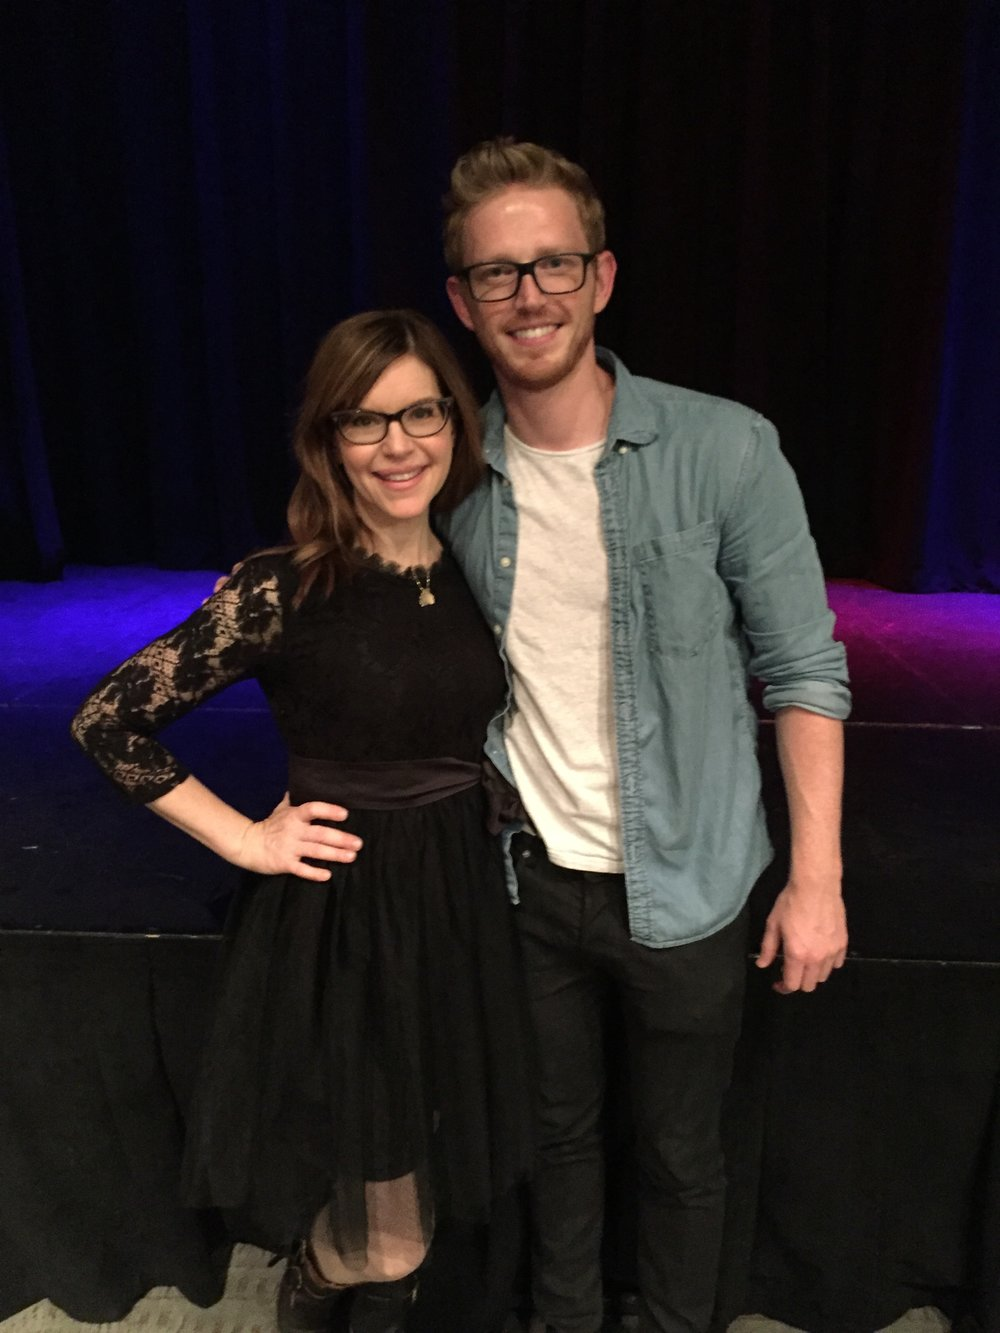 With Lisa Loeb